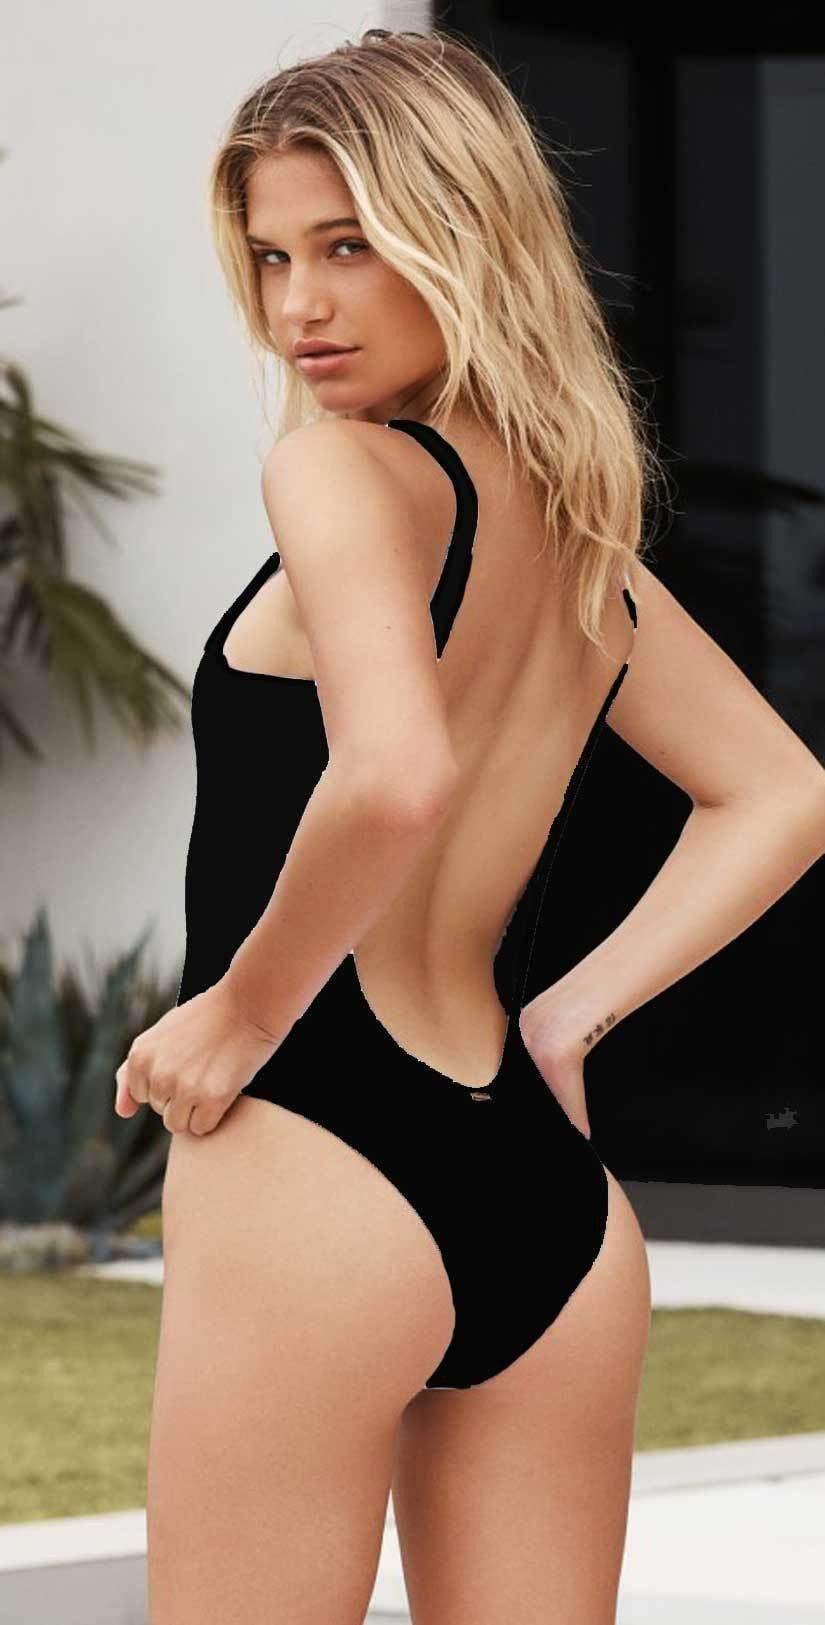 Beach Bunny Rib Tide One Piece in Black B171251P-BLK: